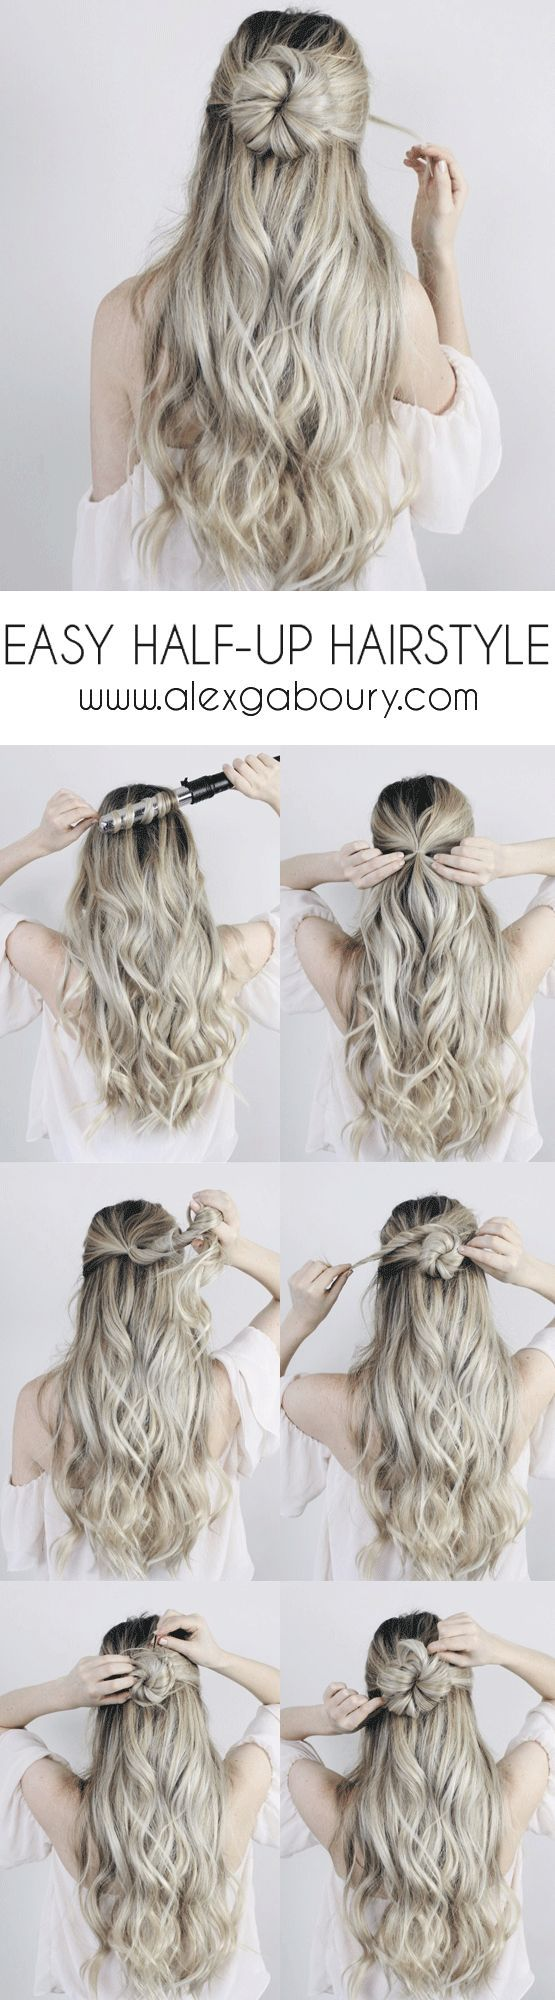 Easy Half-up Hairstyle - With a twist | Pinterest | Warm weather ...